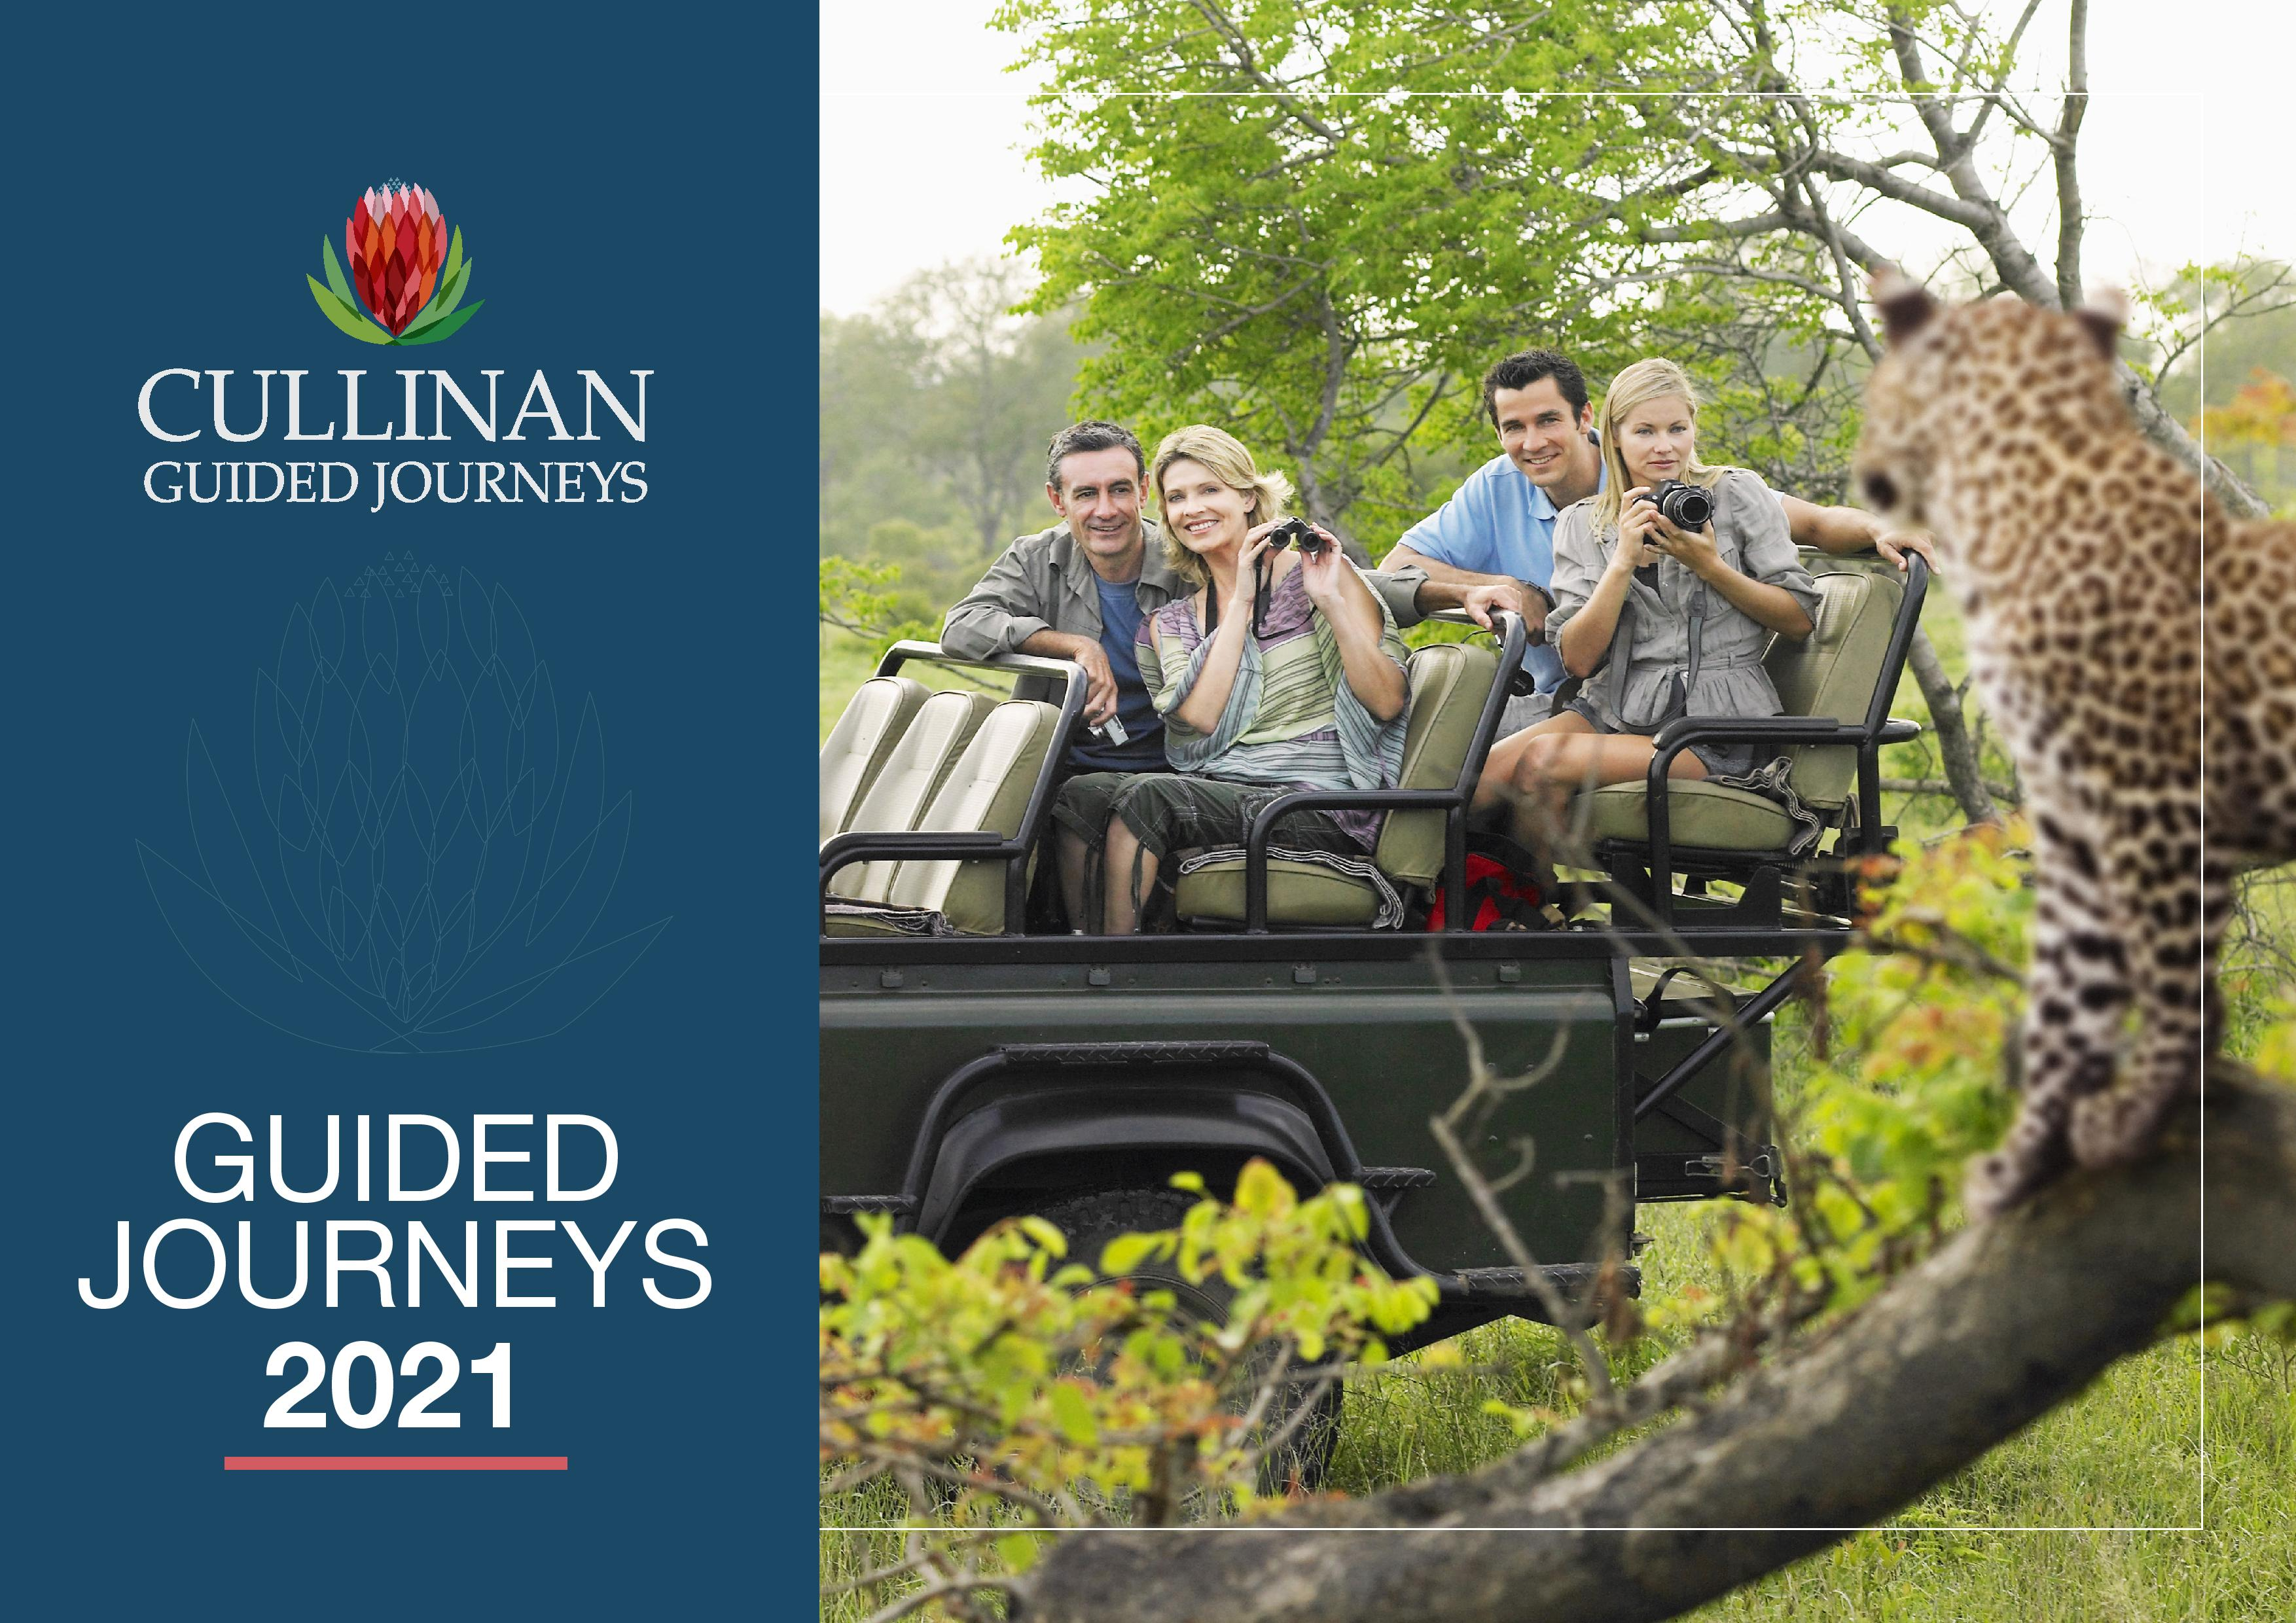 Who we are - Cullinan Guided Journeys 2021